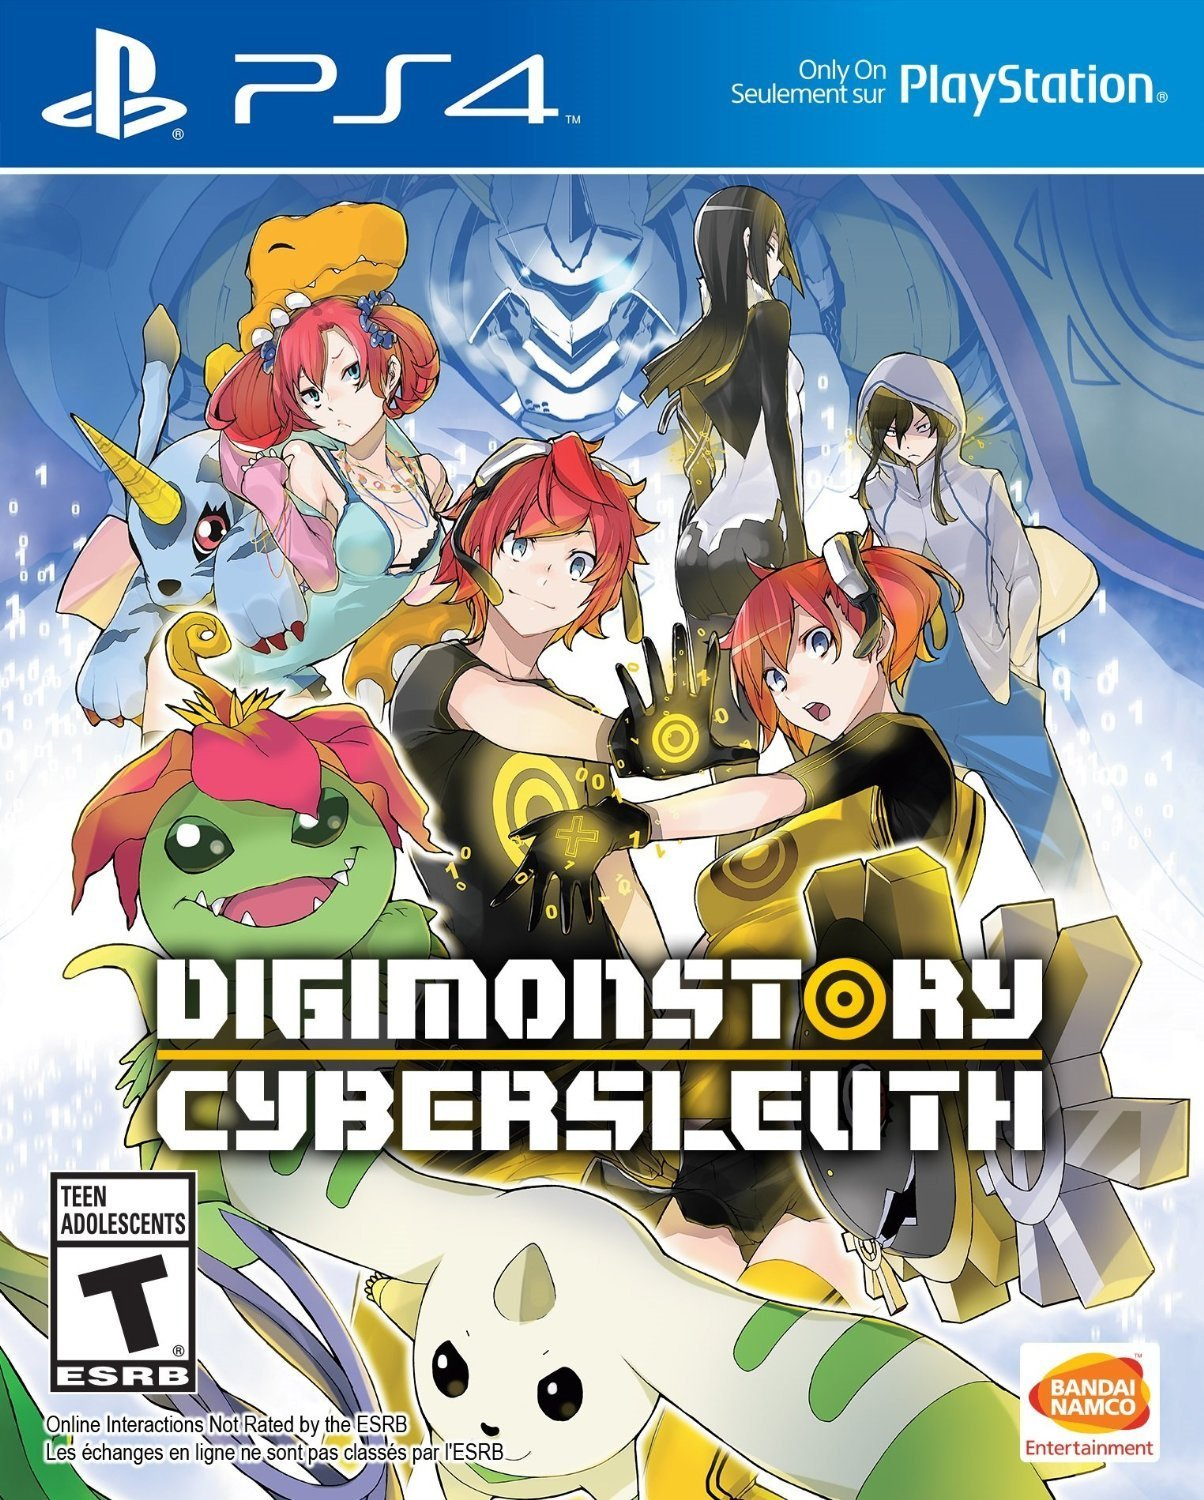 PS4 Games for Kids Under 10: Digimon Story: Cyber Sleuth